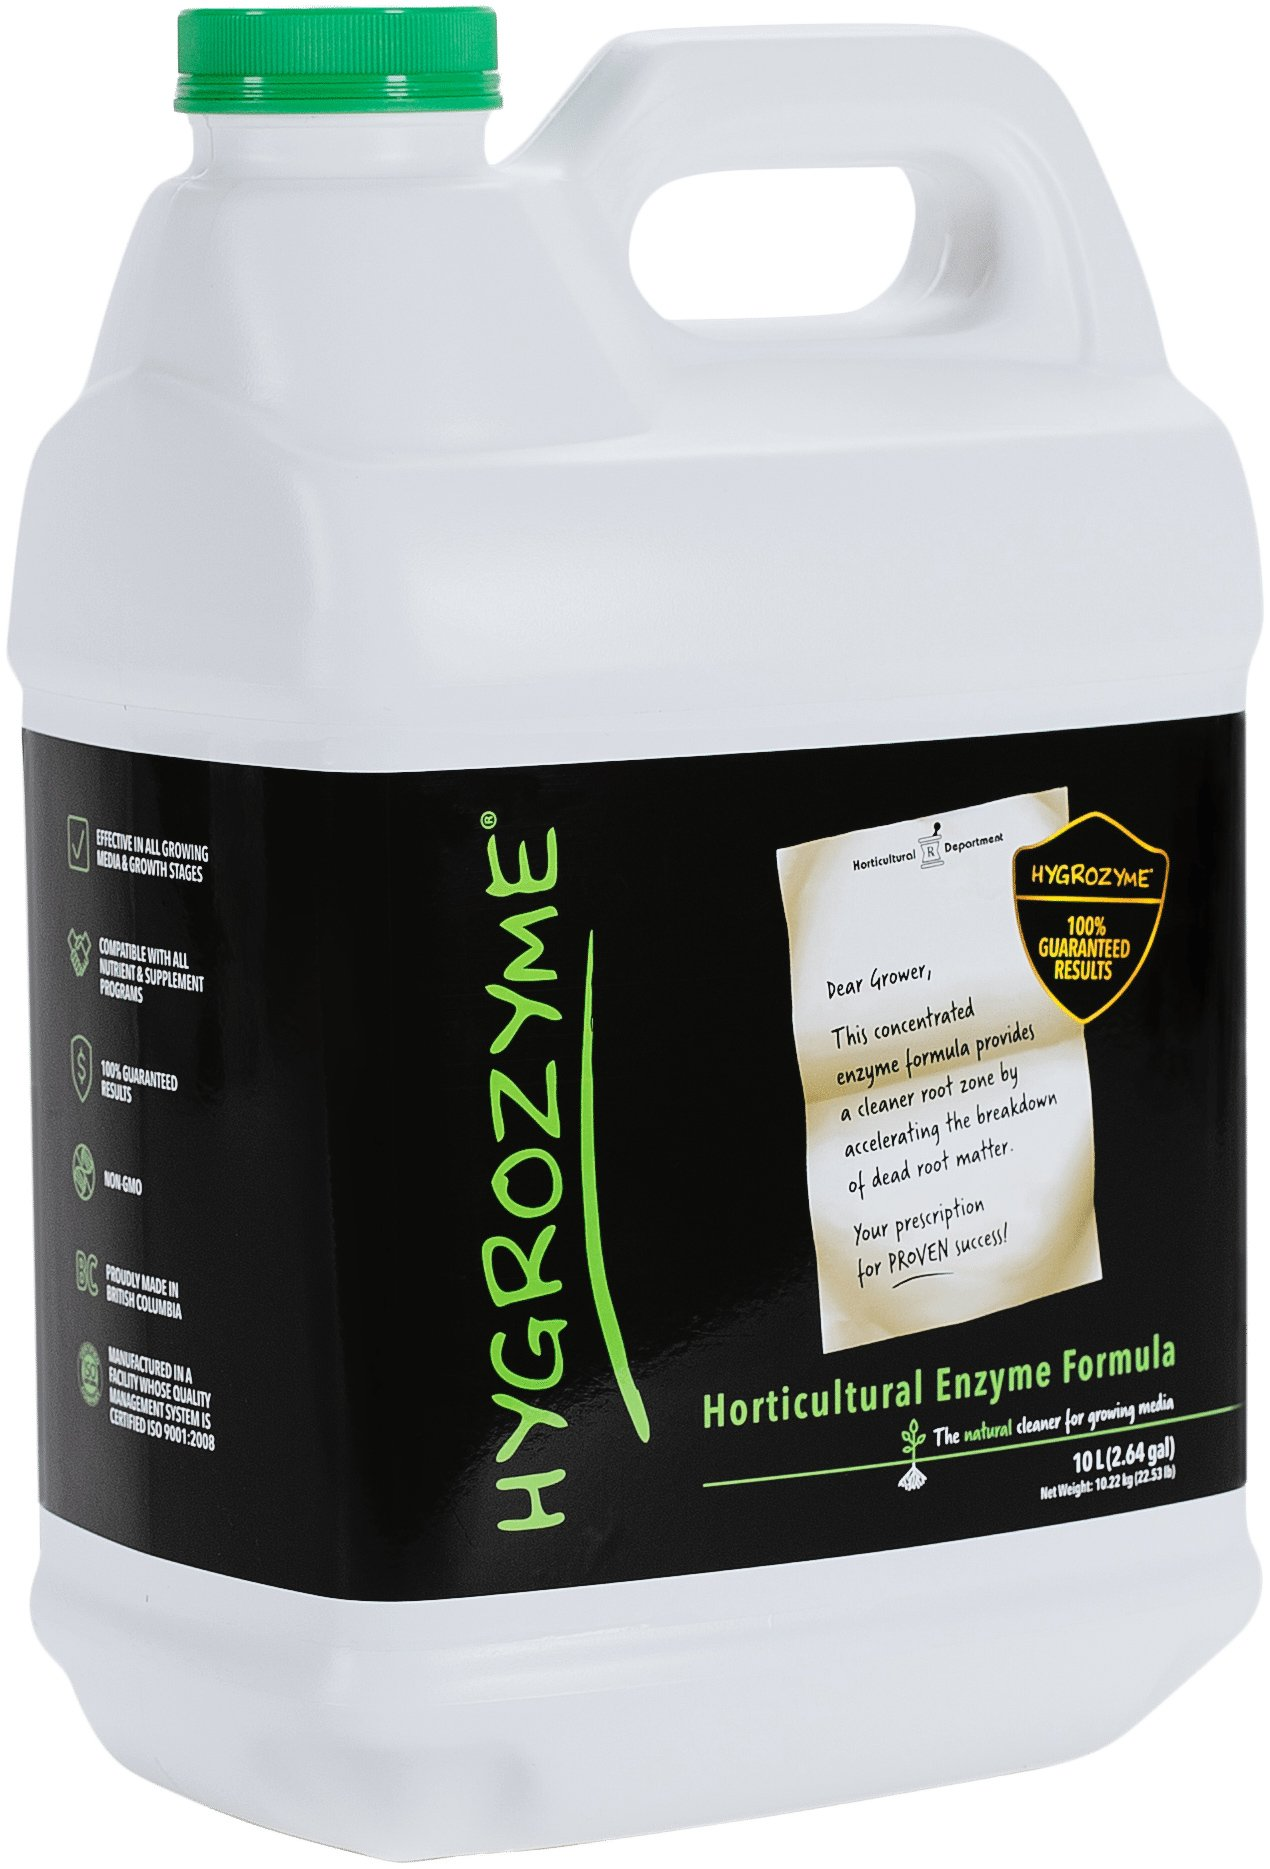 Sipco Hygrozyme, 10 Liter